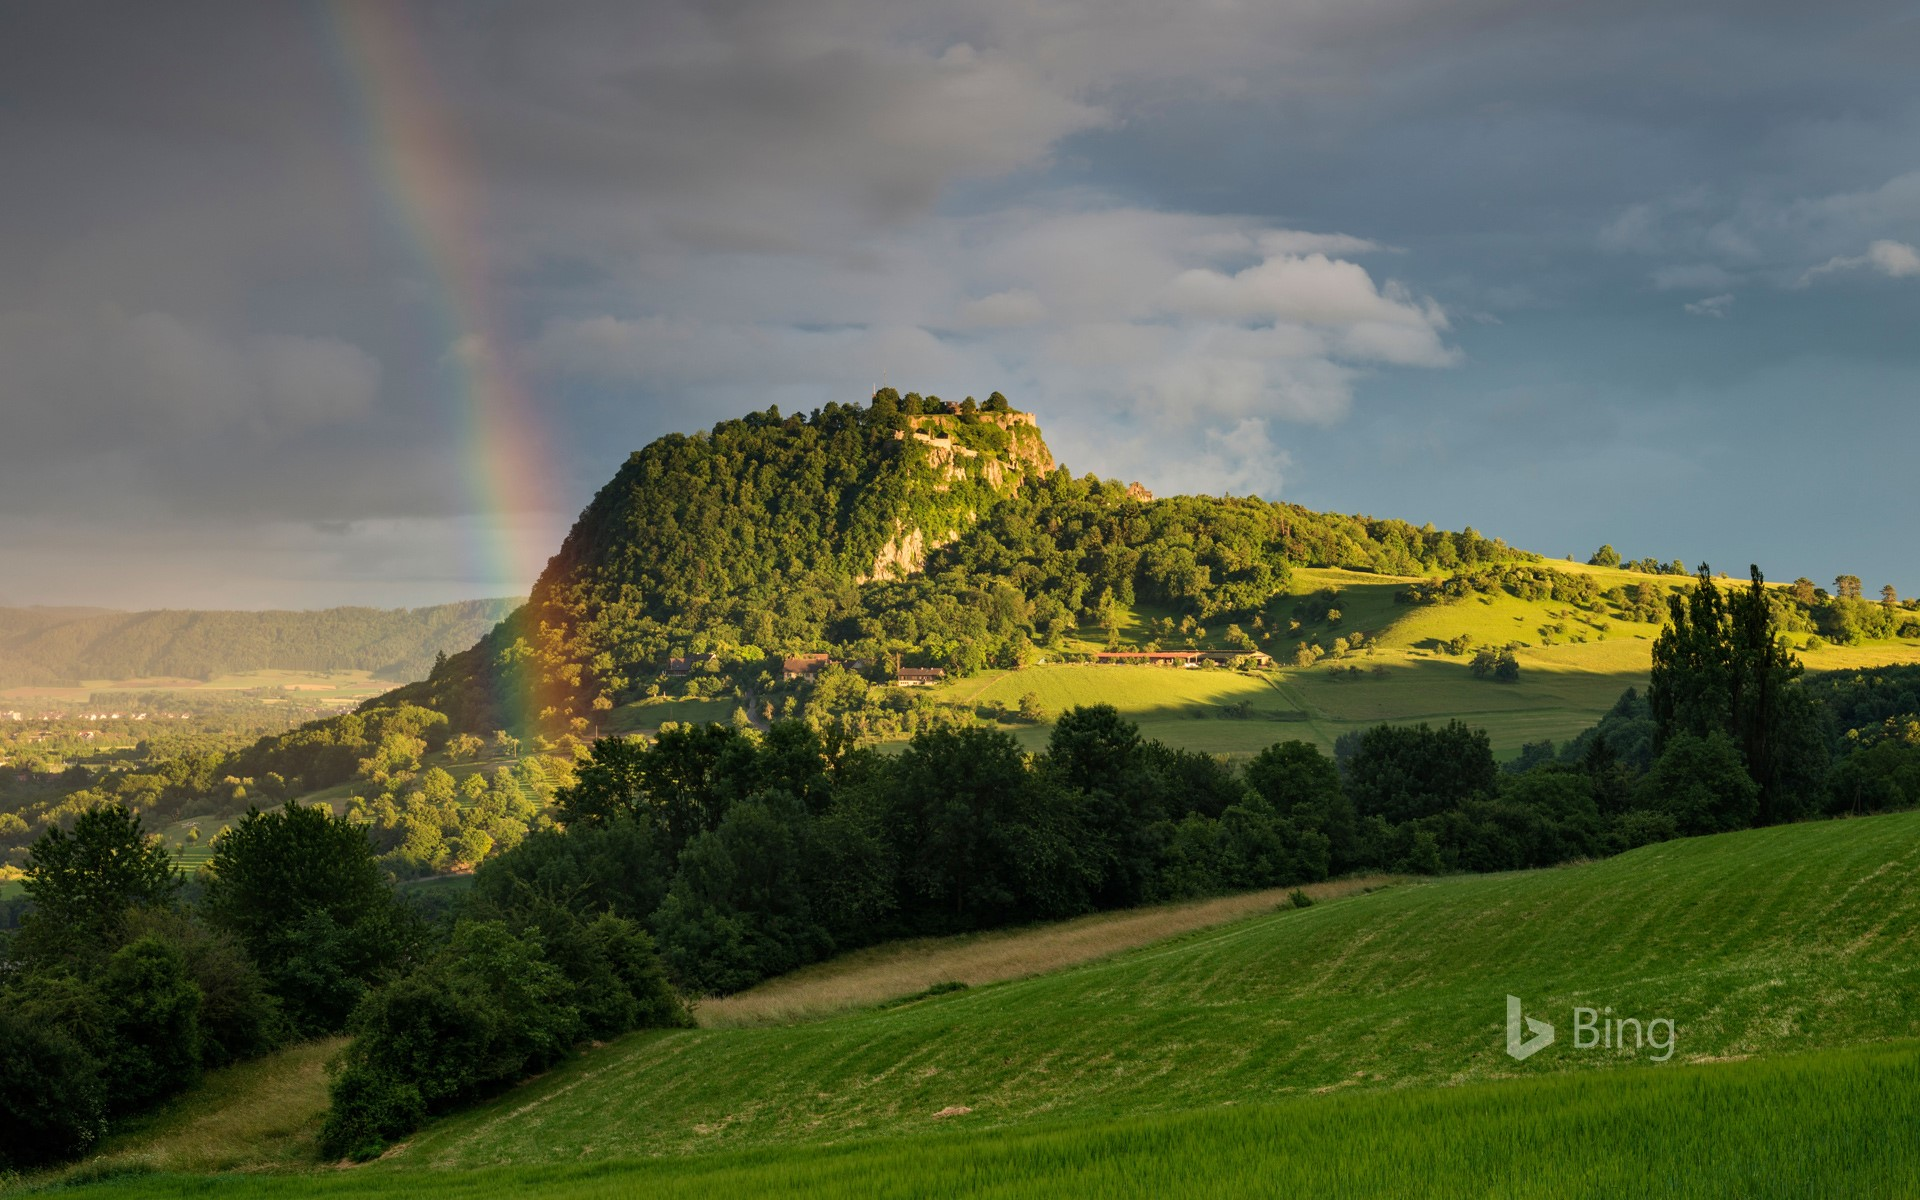 View of the Hohentwiel in the Hegau with rainbow, Baden-Württemberg